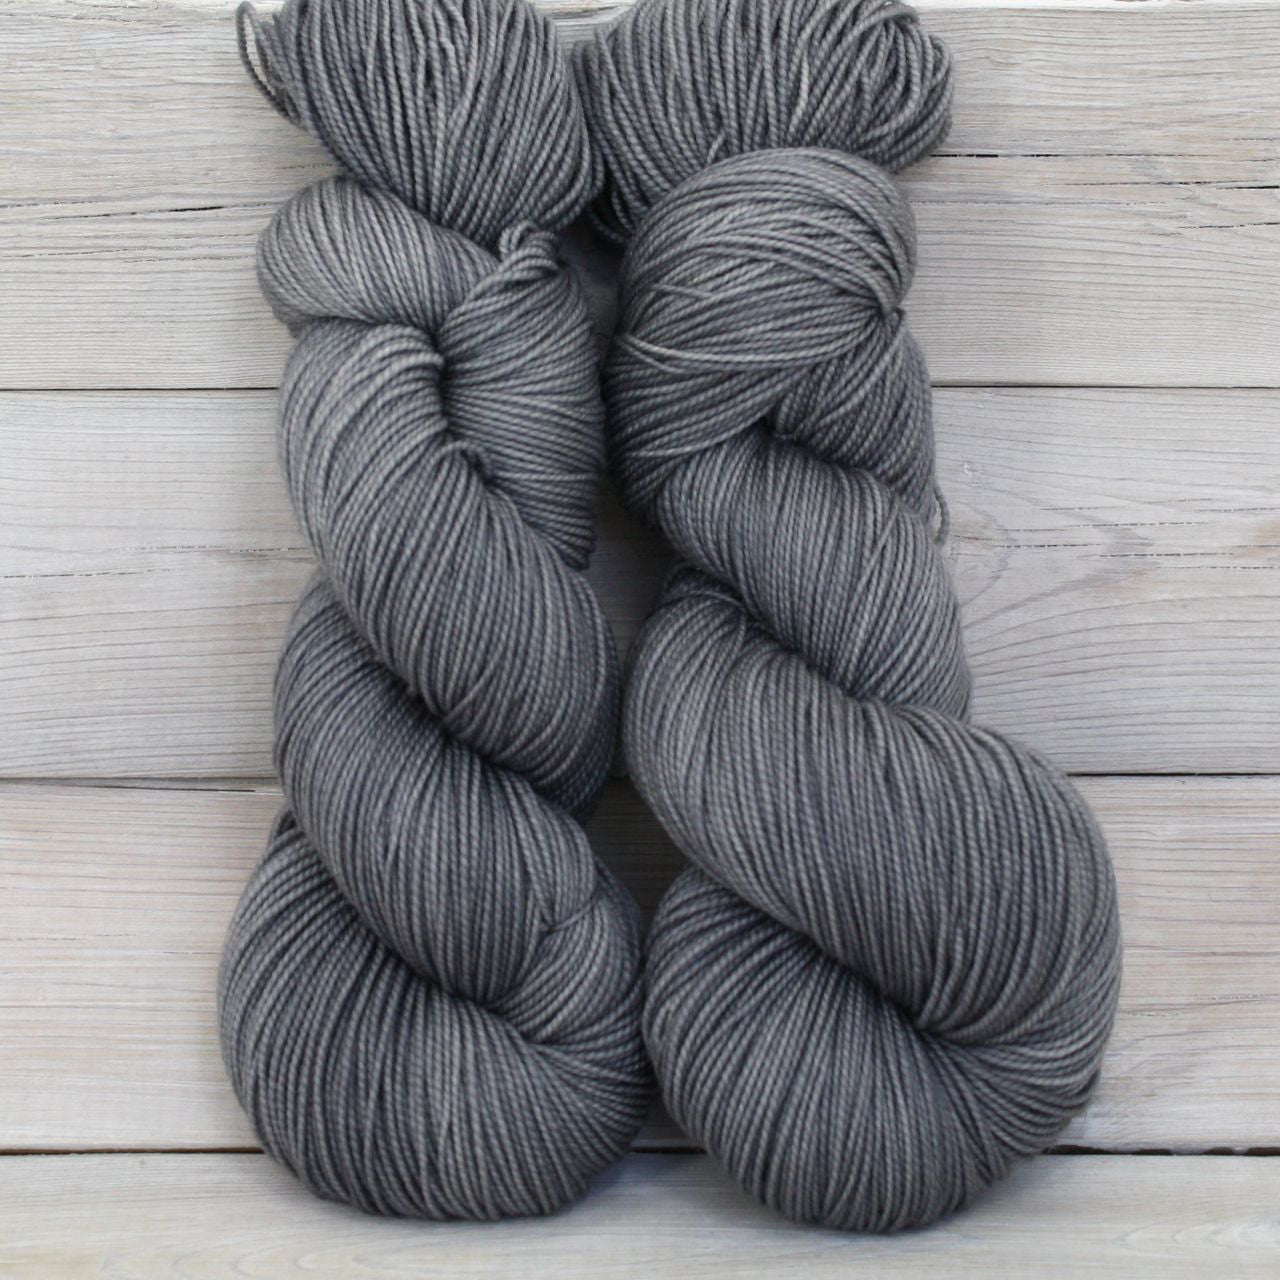 Celeste Yarn | Colorway: Pewter